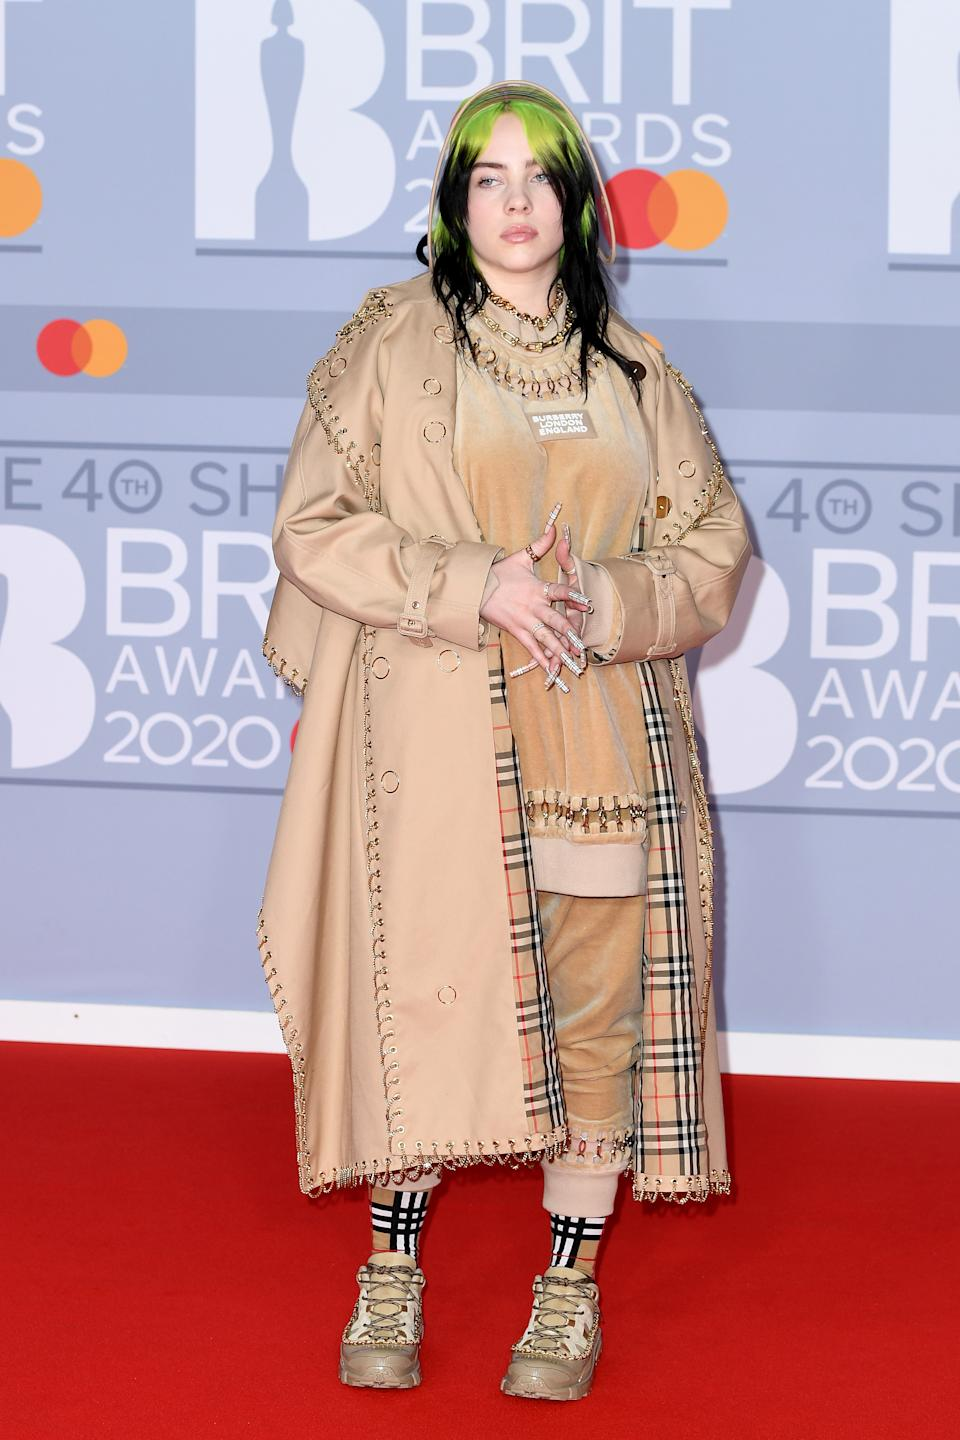 """Billie Eilish says she wears baggy clothes to be comfortable and describes her relationship with her body as """"toxic."""" (Photo by Gareth Cattermole/Getty Images)"""